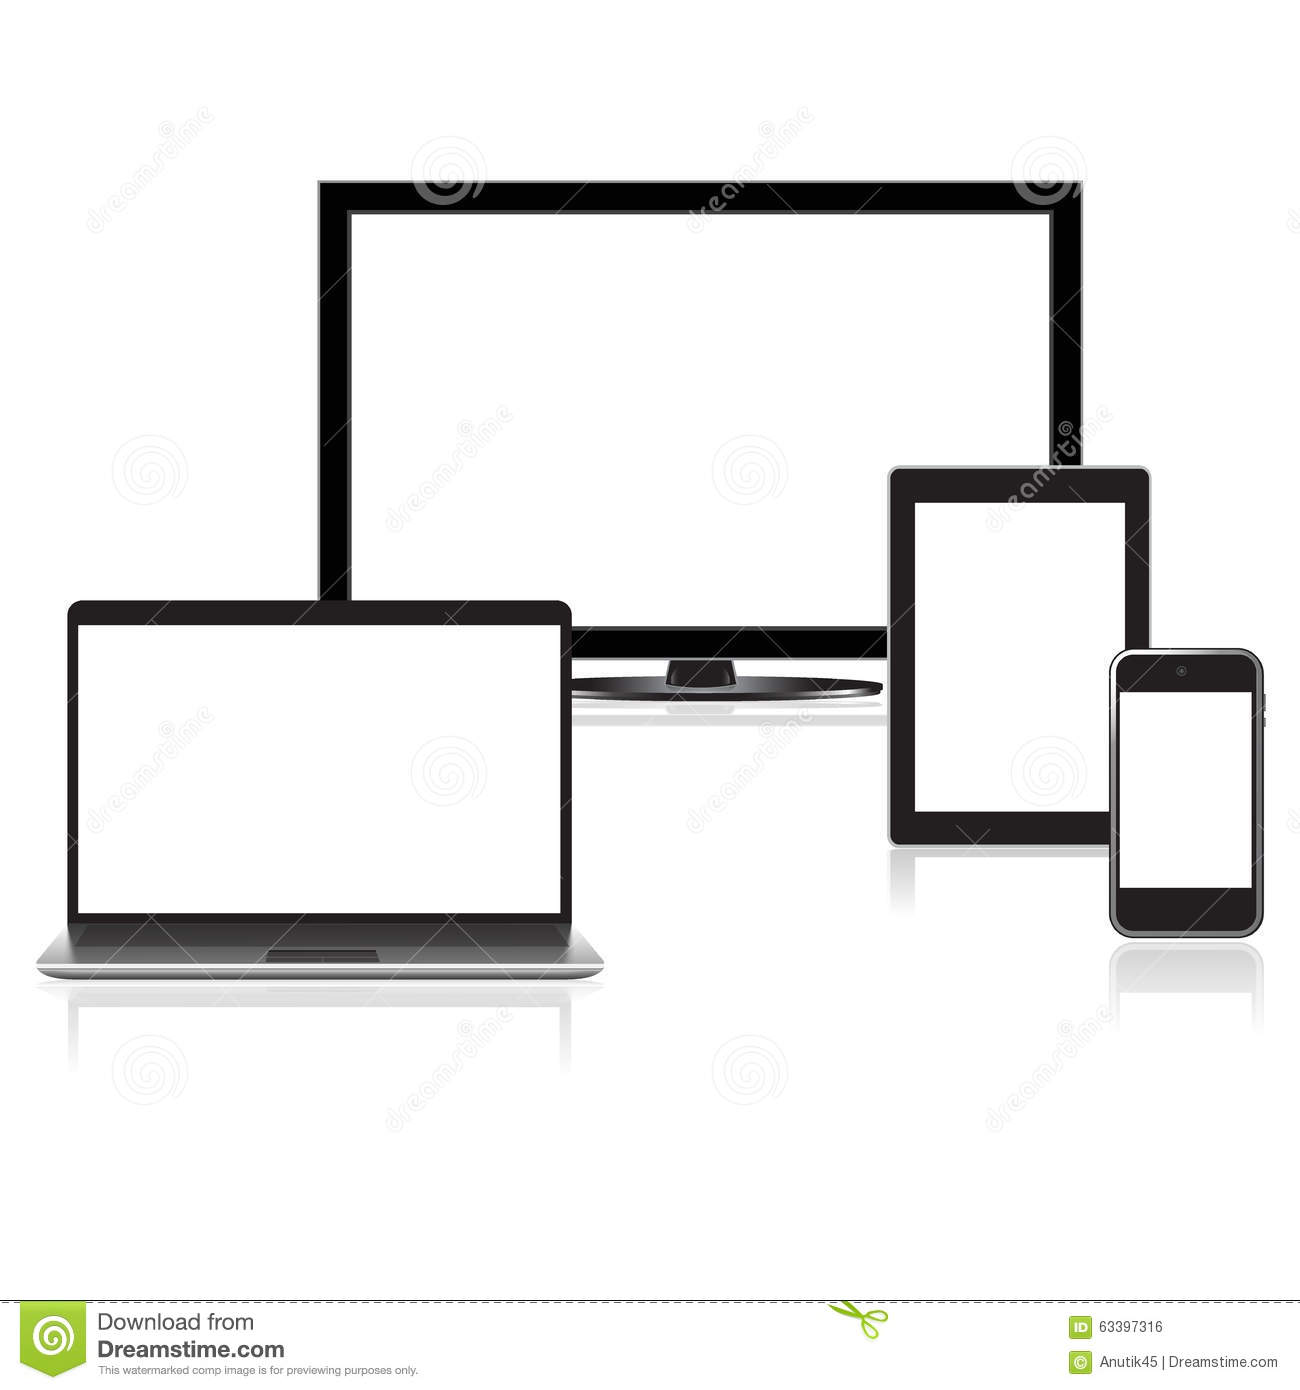 High quality electronic devices illustration collection